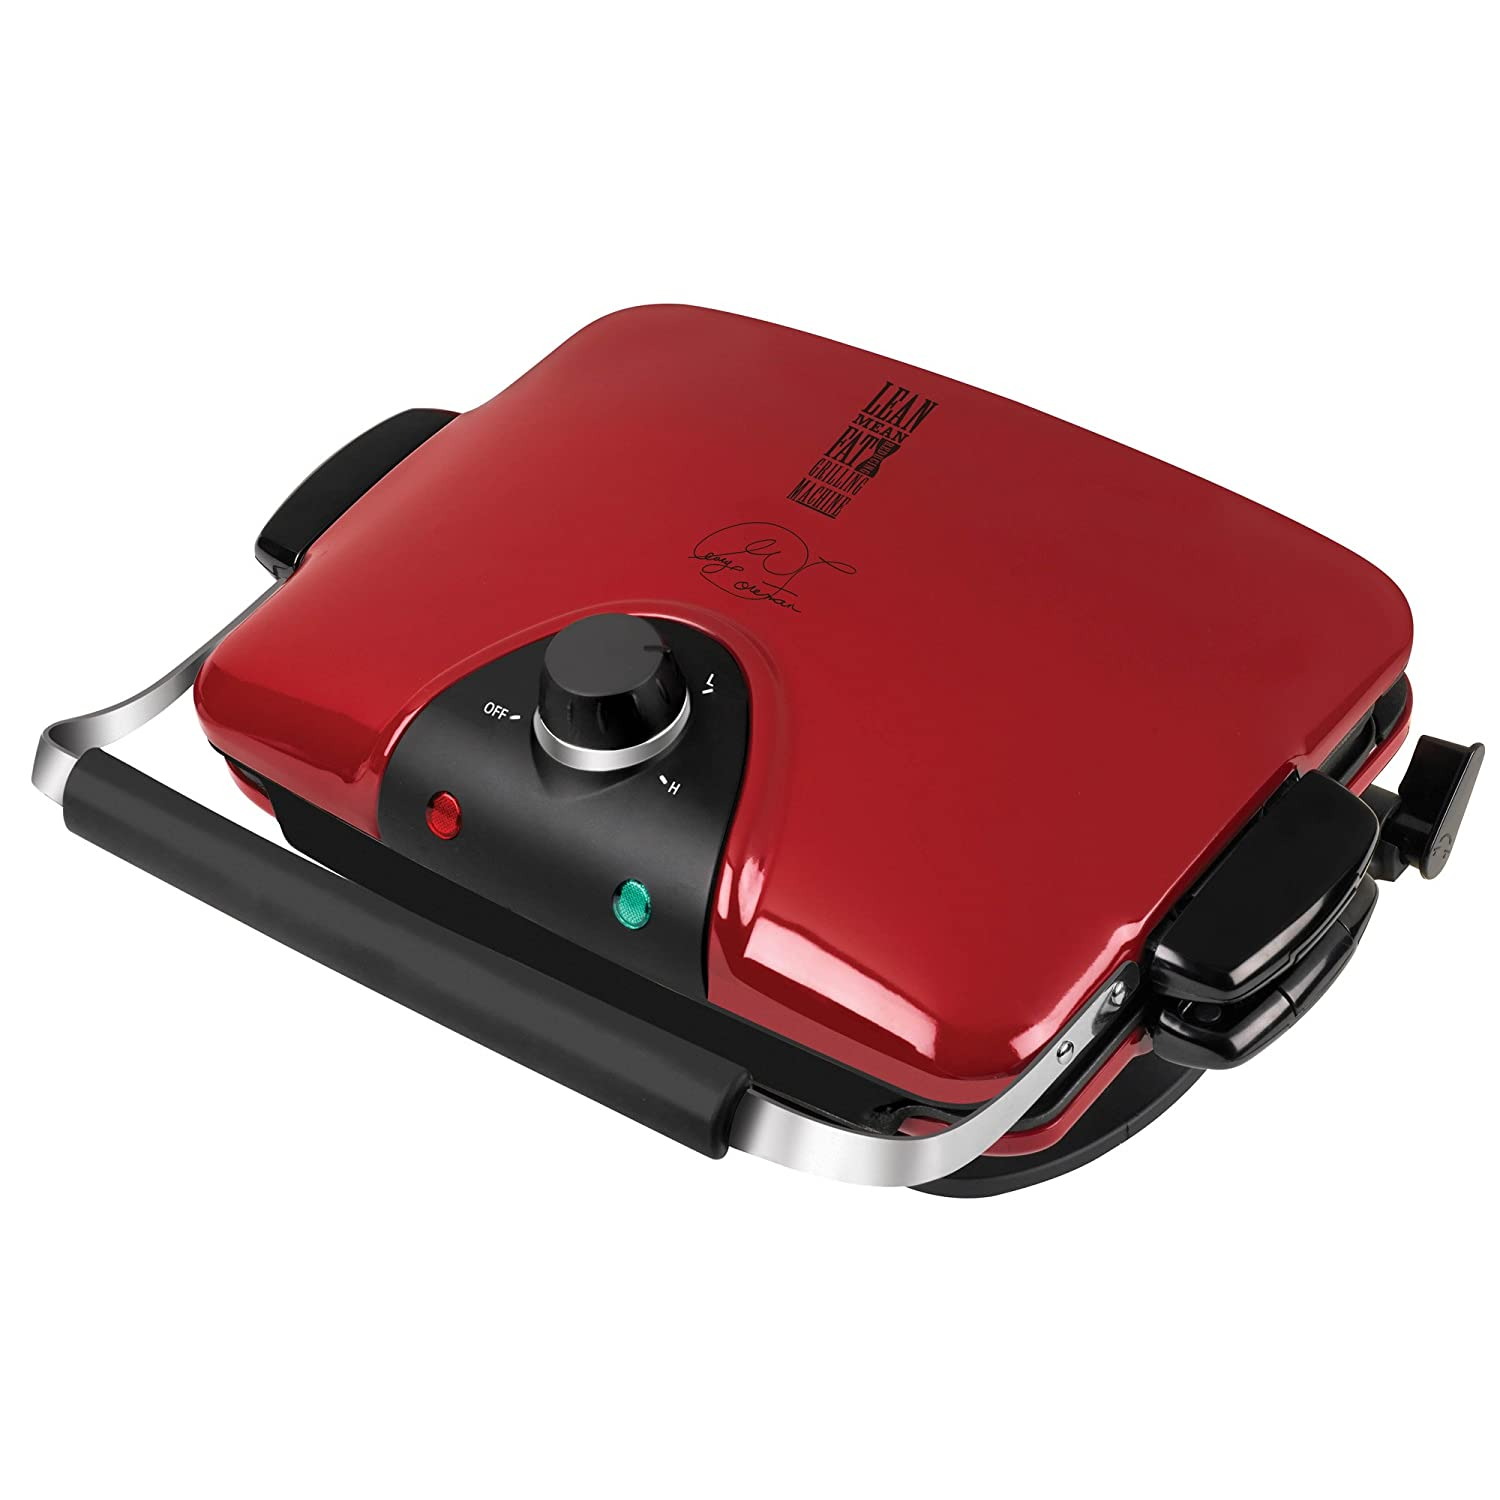 george foreman grilling machine model grp90wgr manual